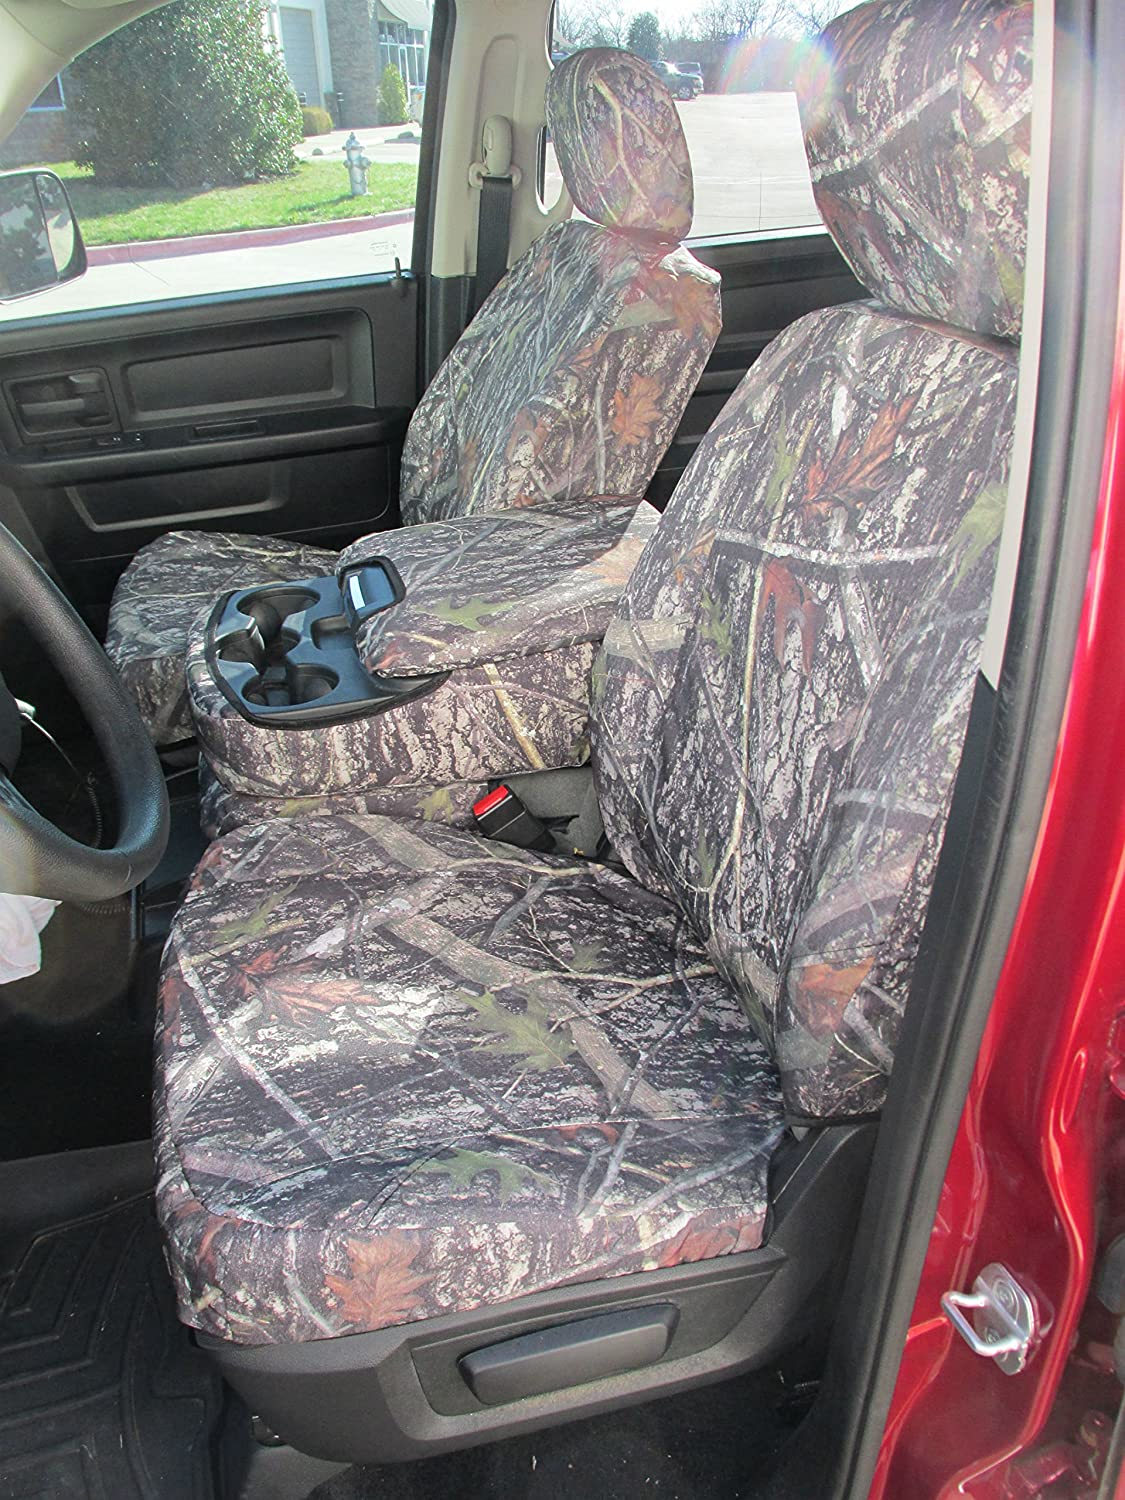 Durafit Seat Covers, D1332 XD3 C 2013-2014 Dodge Ram 1500 Seat Covers in XD3 Camo Endura. Front 40/20/40 split bench, Opening 20 section seat bottom with opening center console with 3 cup holders. Side impact airbags in seat